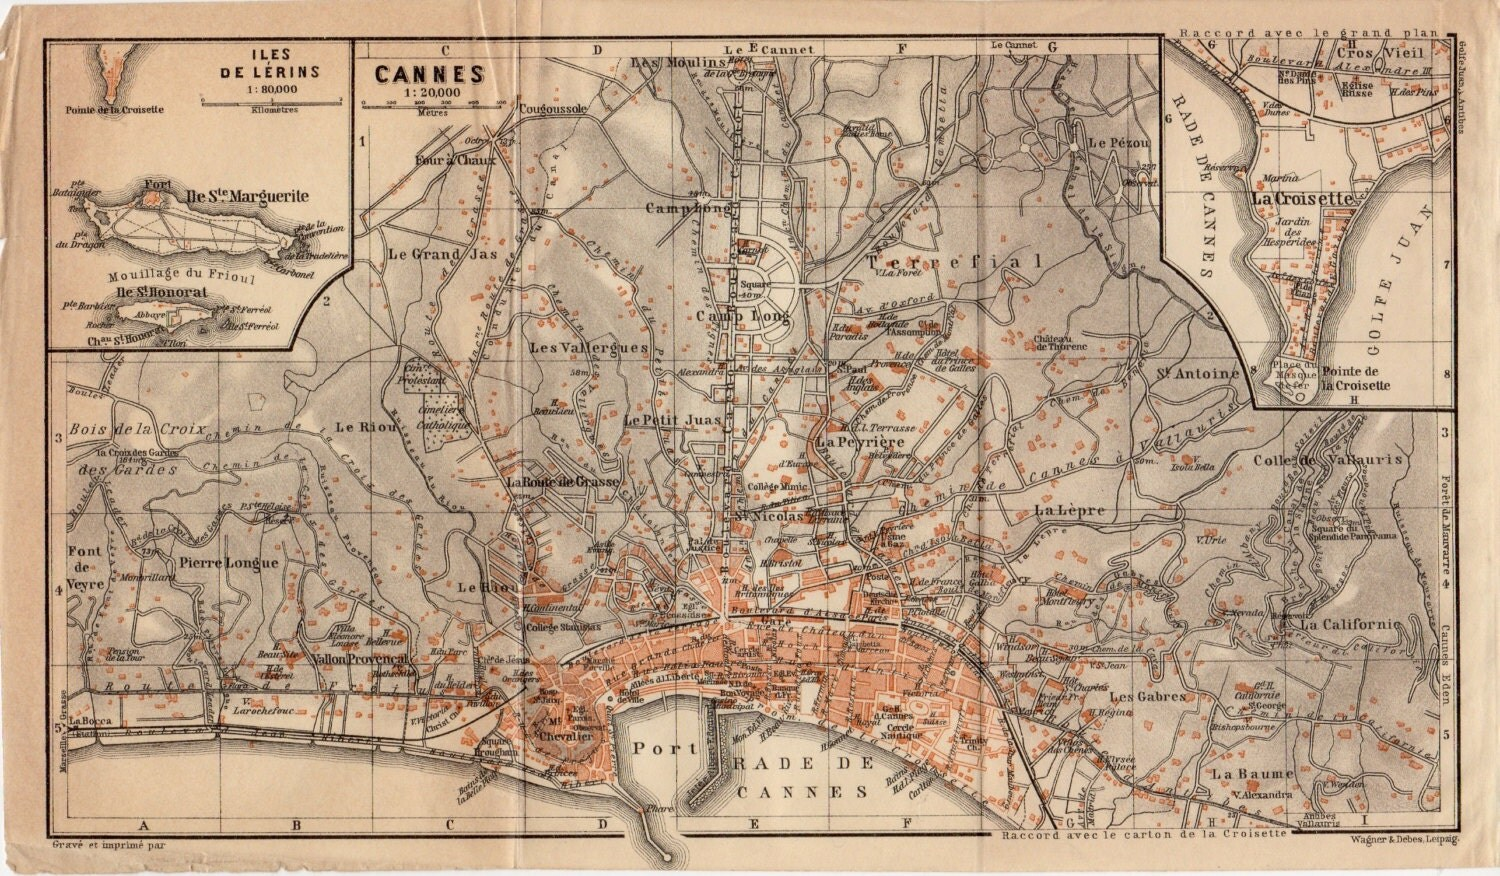 1914 Cannes, France, Alpes-Maritimes Department, Cannes City Map, Provence-Alpes-Côte d'Azur Region, Iles de Lérins, La Croisette - Craftissimo